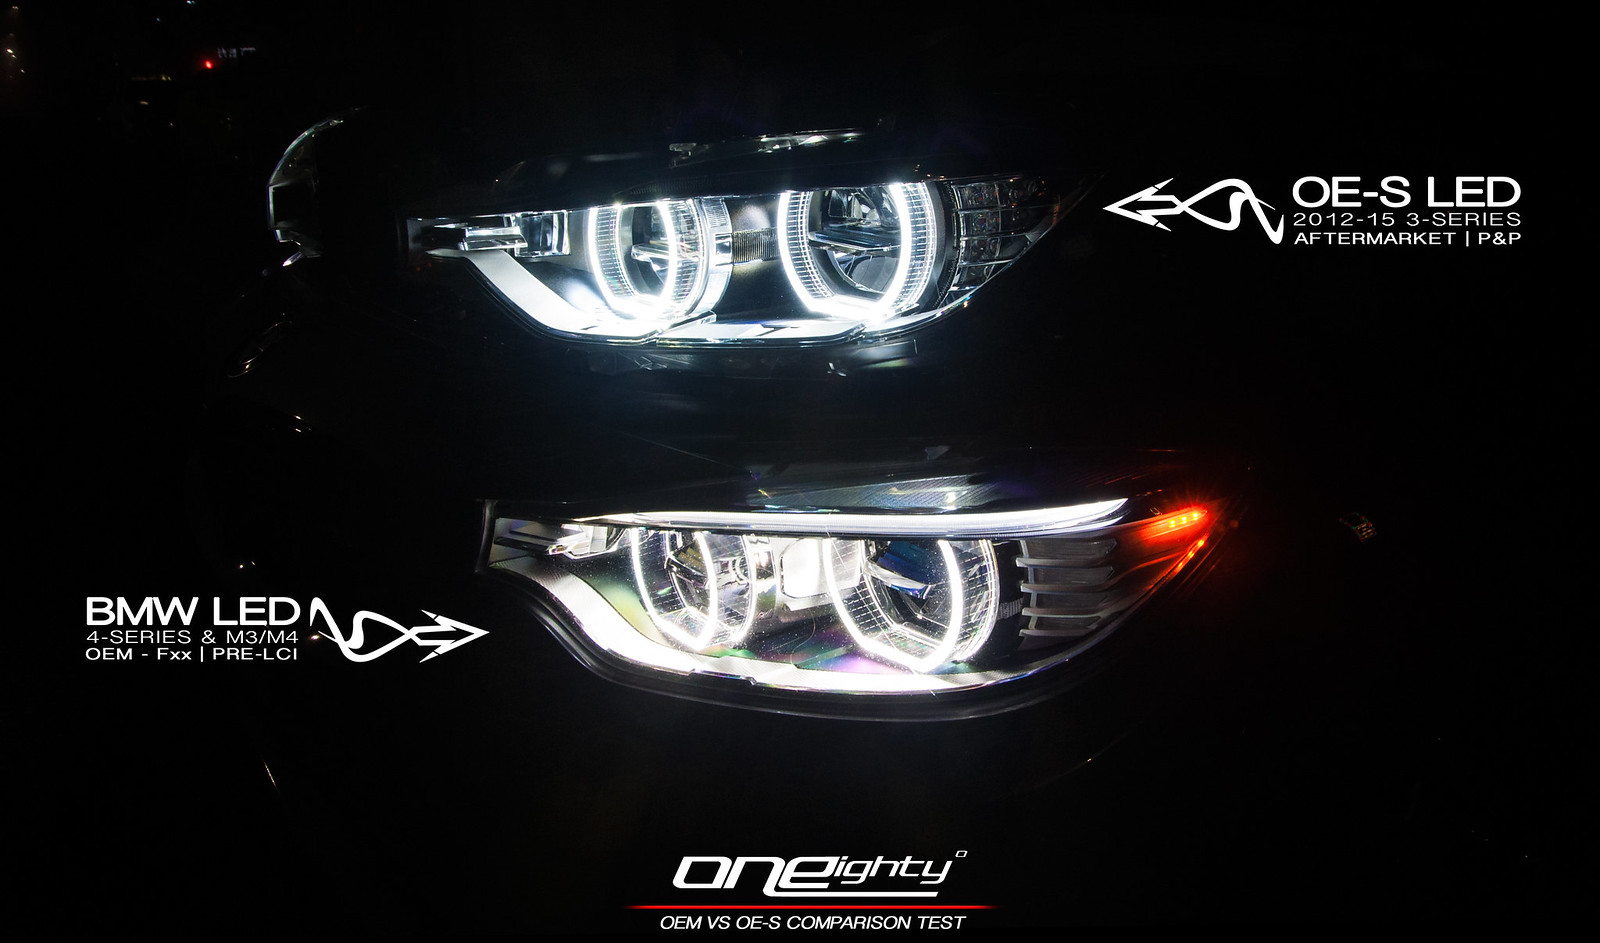 led headlights vs xenon bmw 4 series coronas on xenon vs led headlights depo 04 06 bmw e46 2d. Black Bedroom Furniture Sets. Home Design Ideas